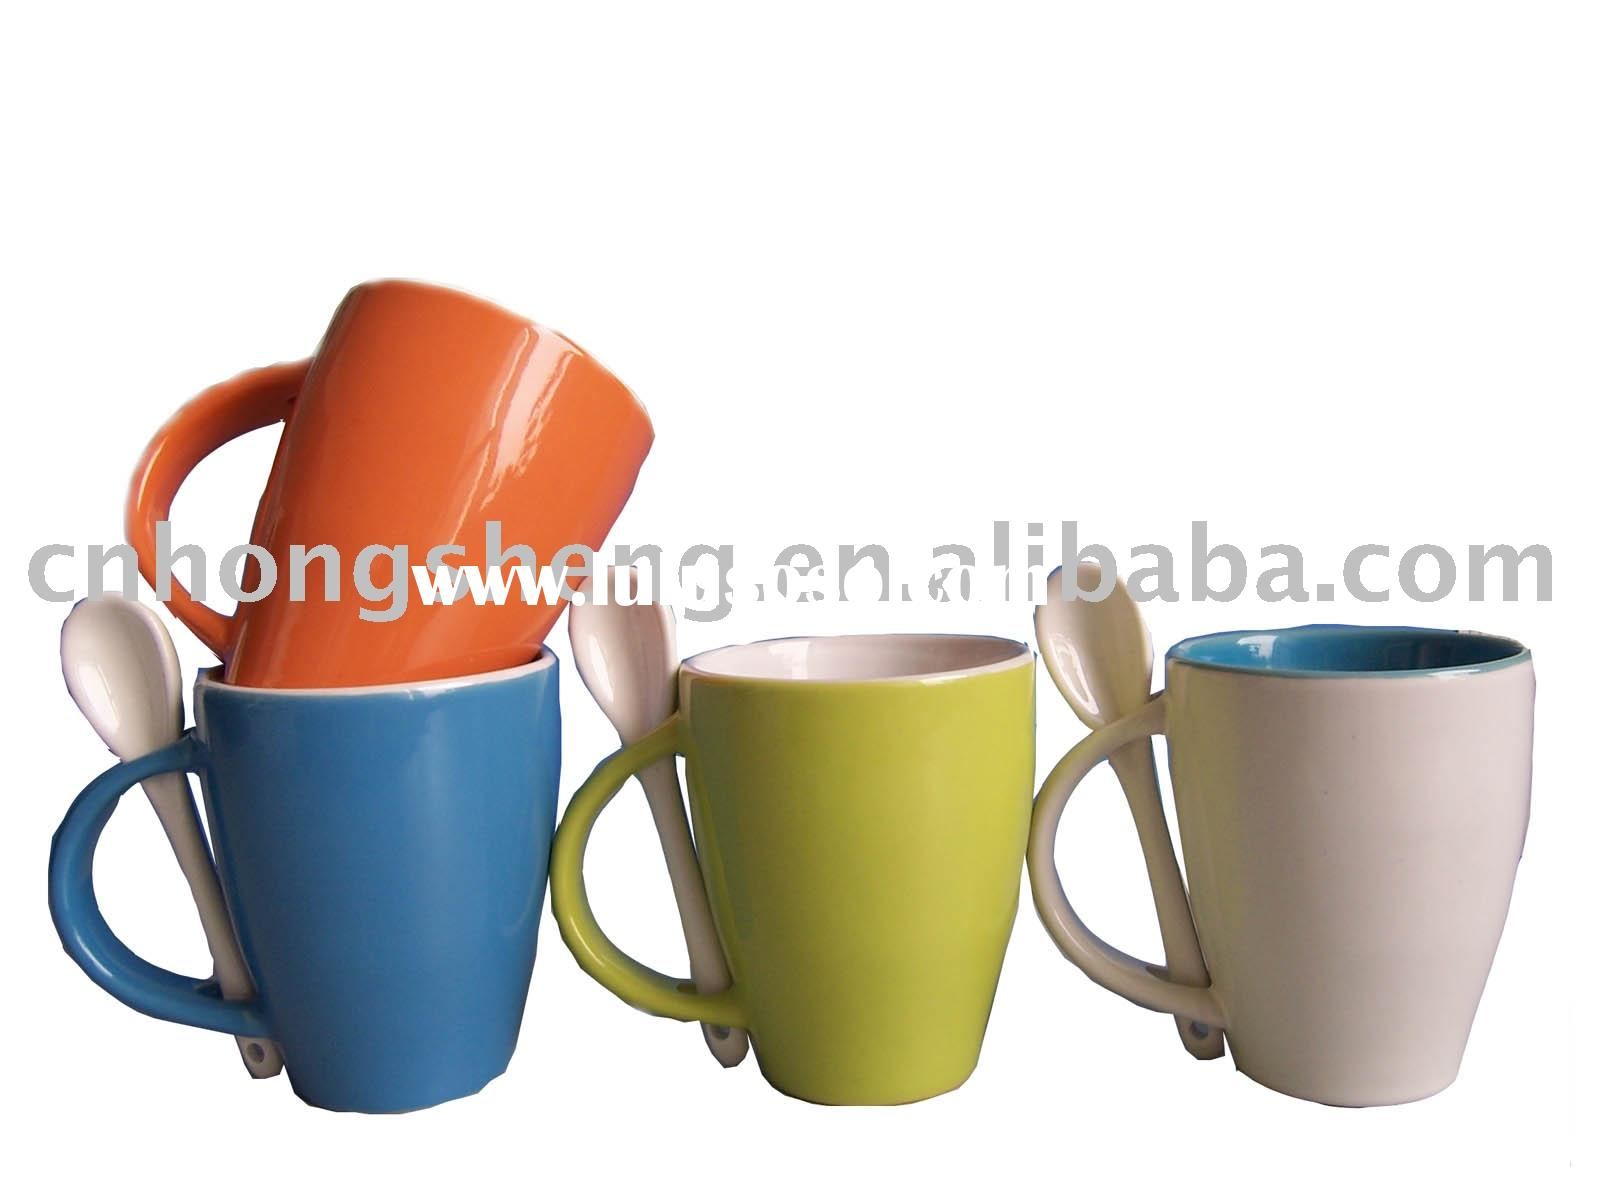 Color Ceramic Mug Spoon for Tea Mug Set for Promotion